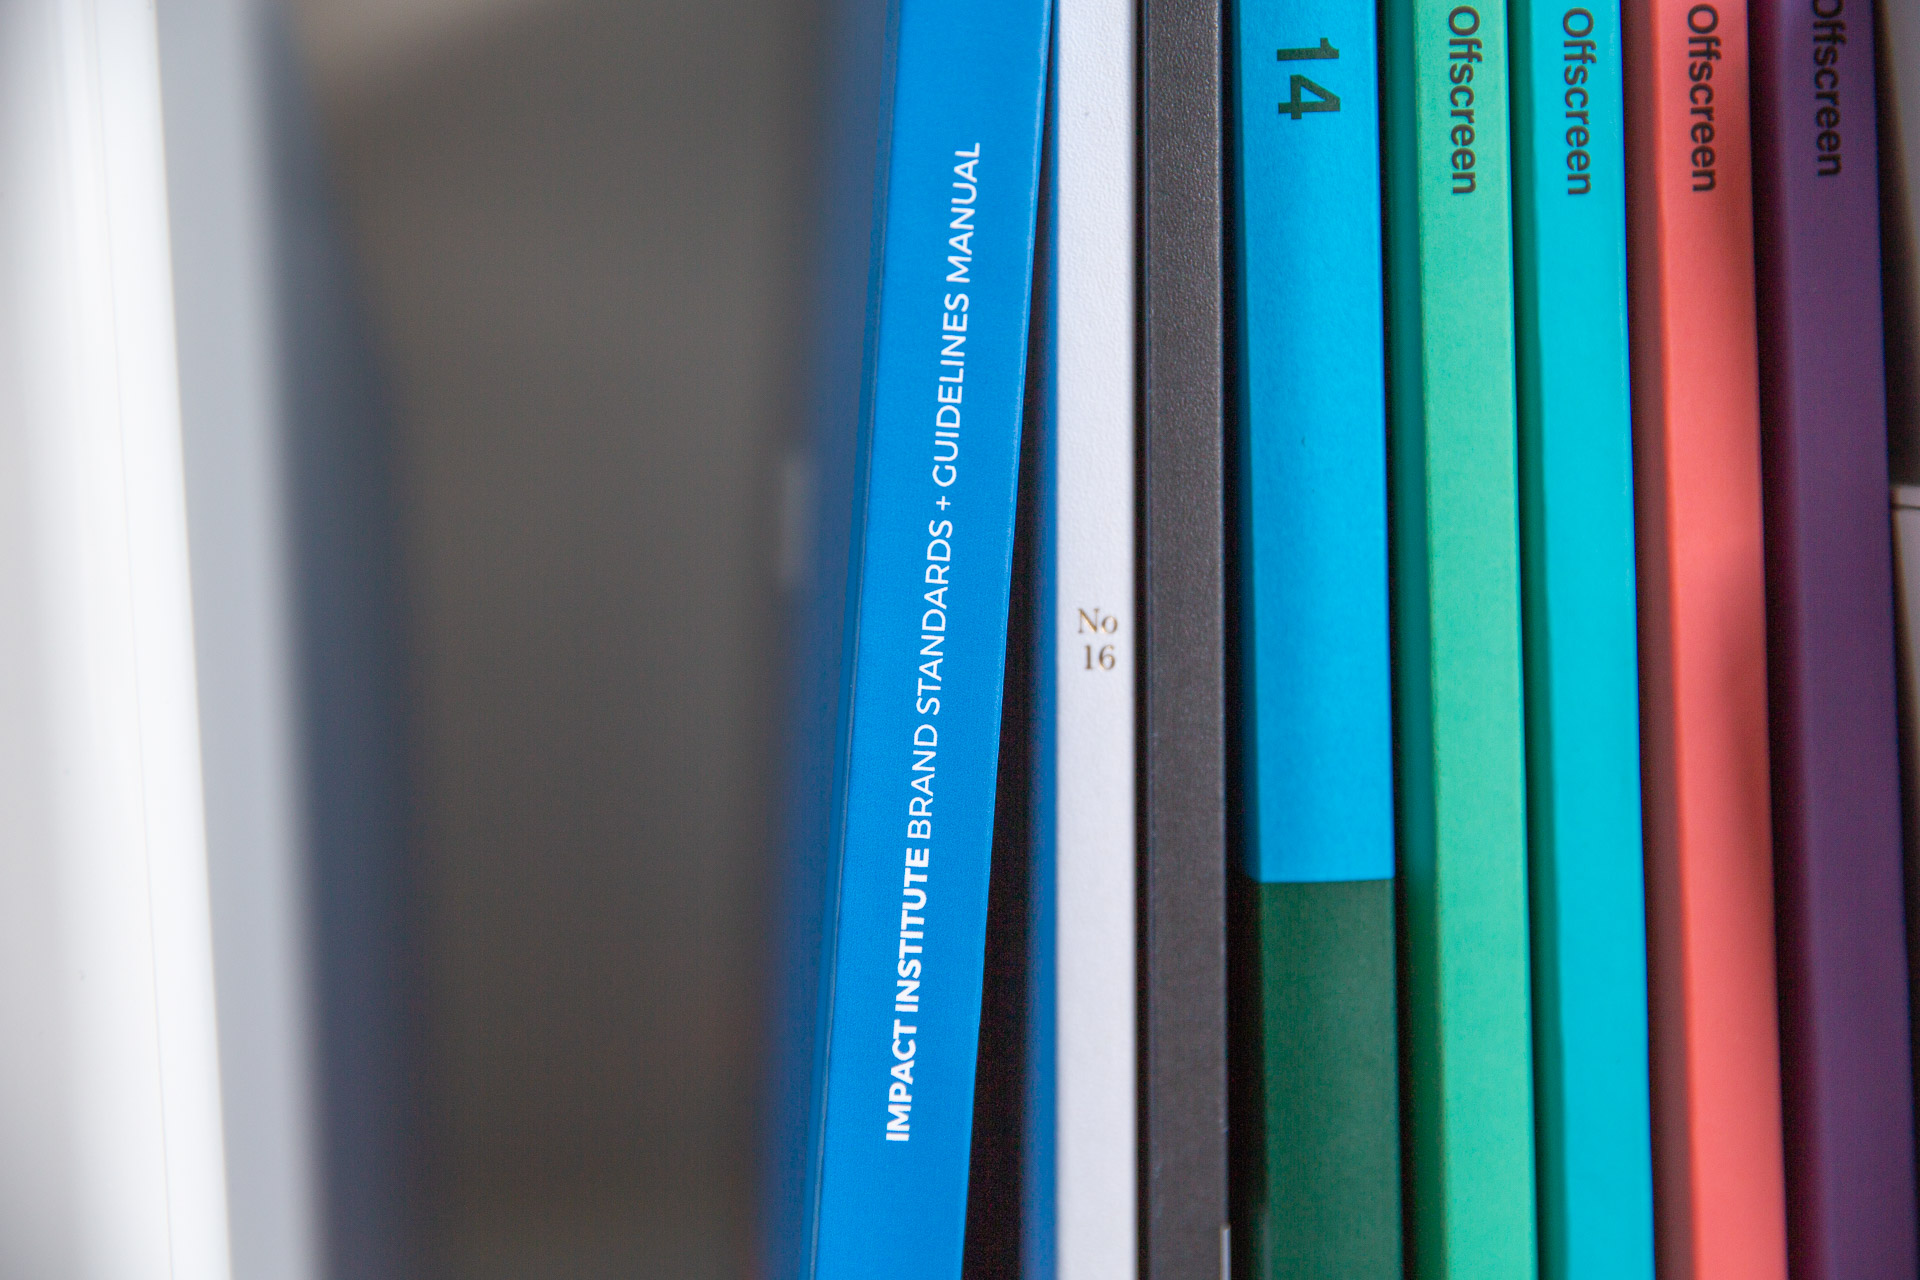 Close-up of Impact Institute brand guideline manual stacked on bookcase next to small, colorful magazines and white bins